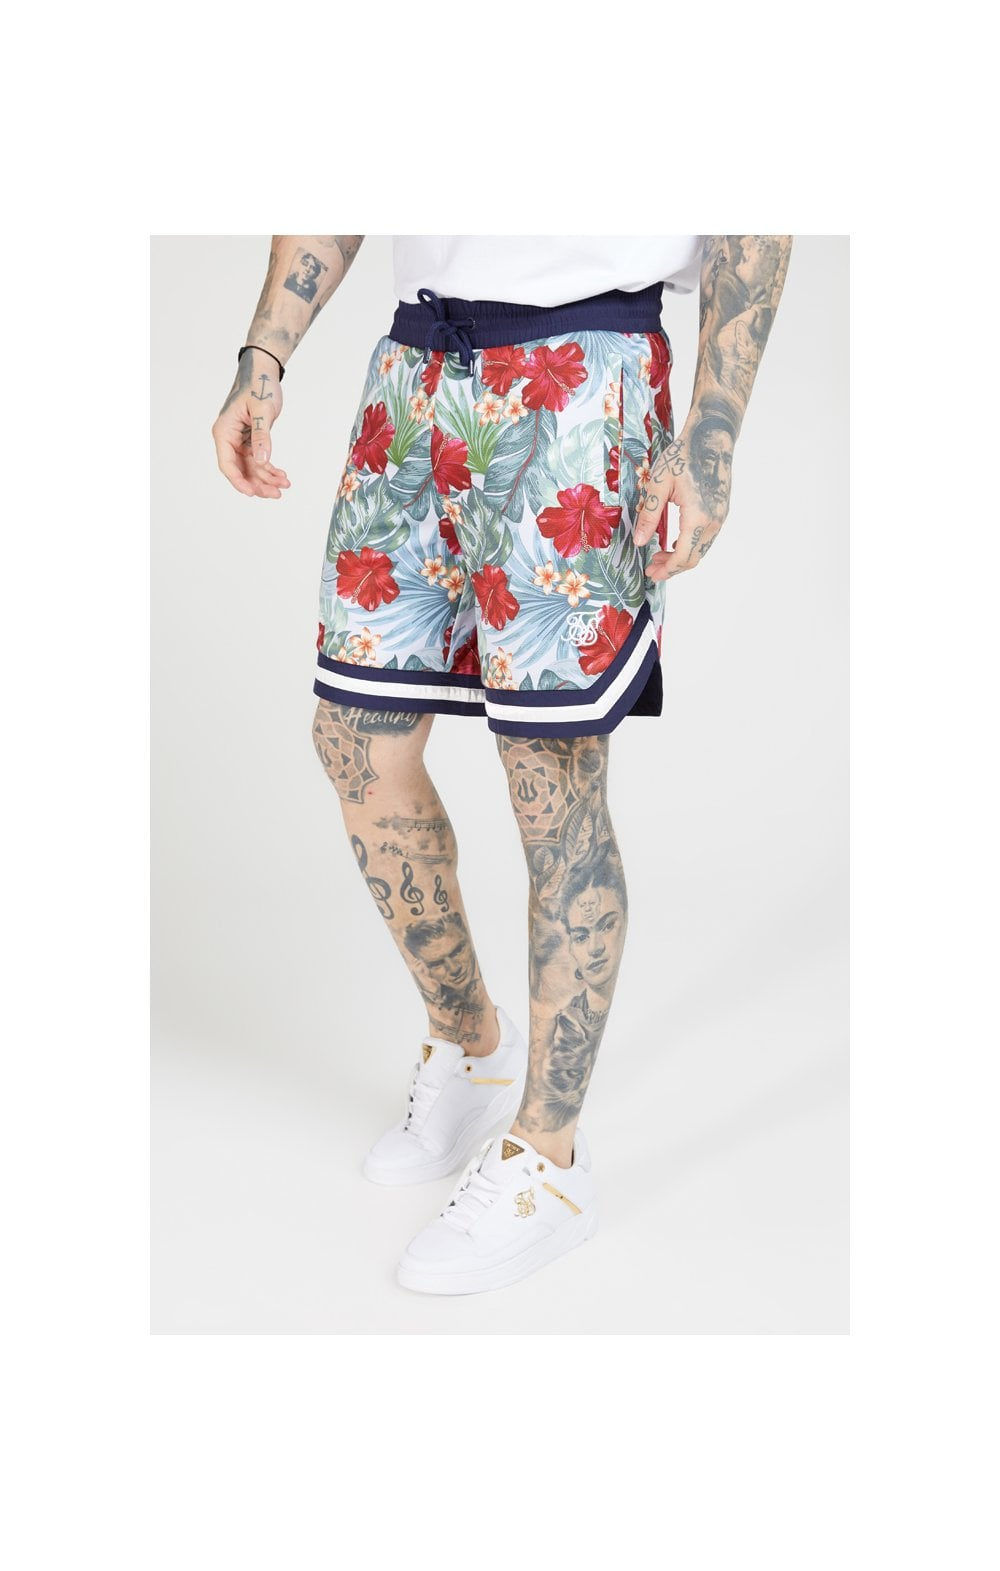 SikSilk 70's Floral Basketball Shorts - Navy & White